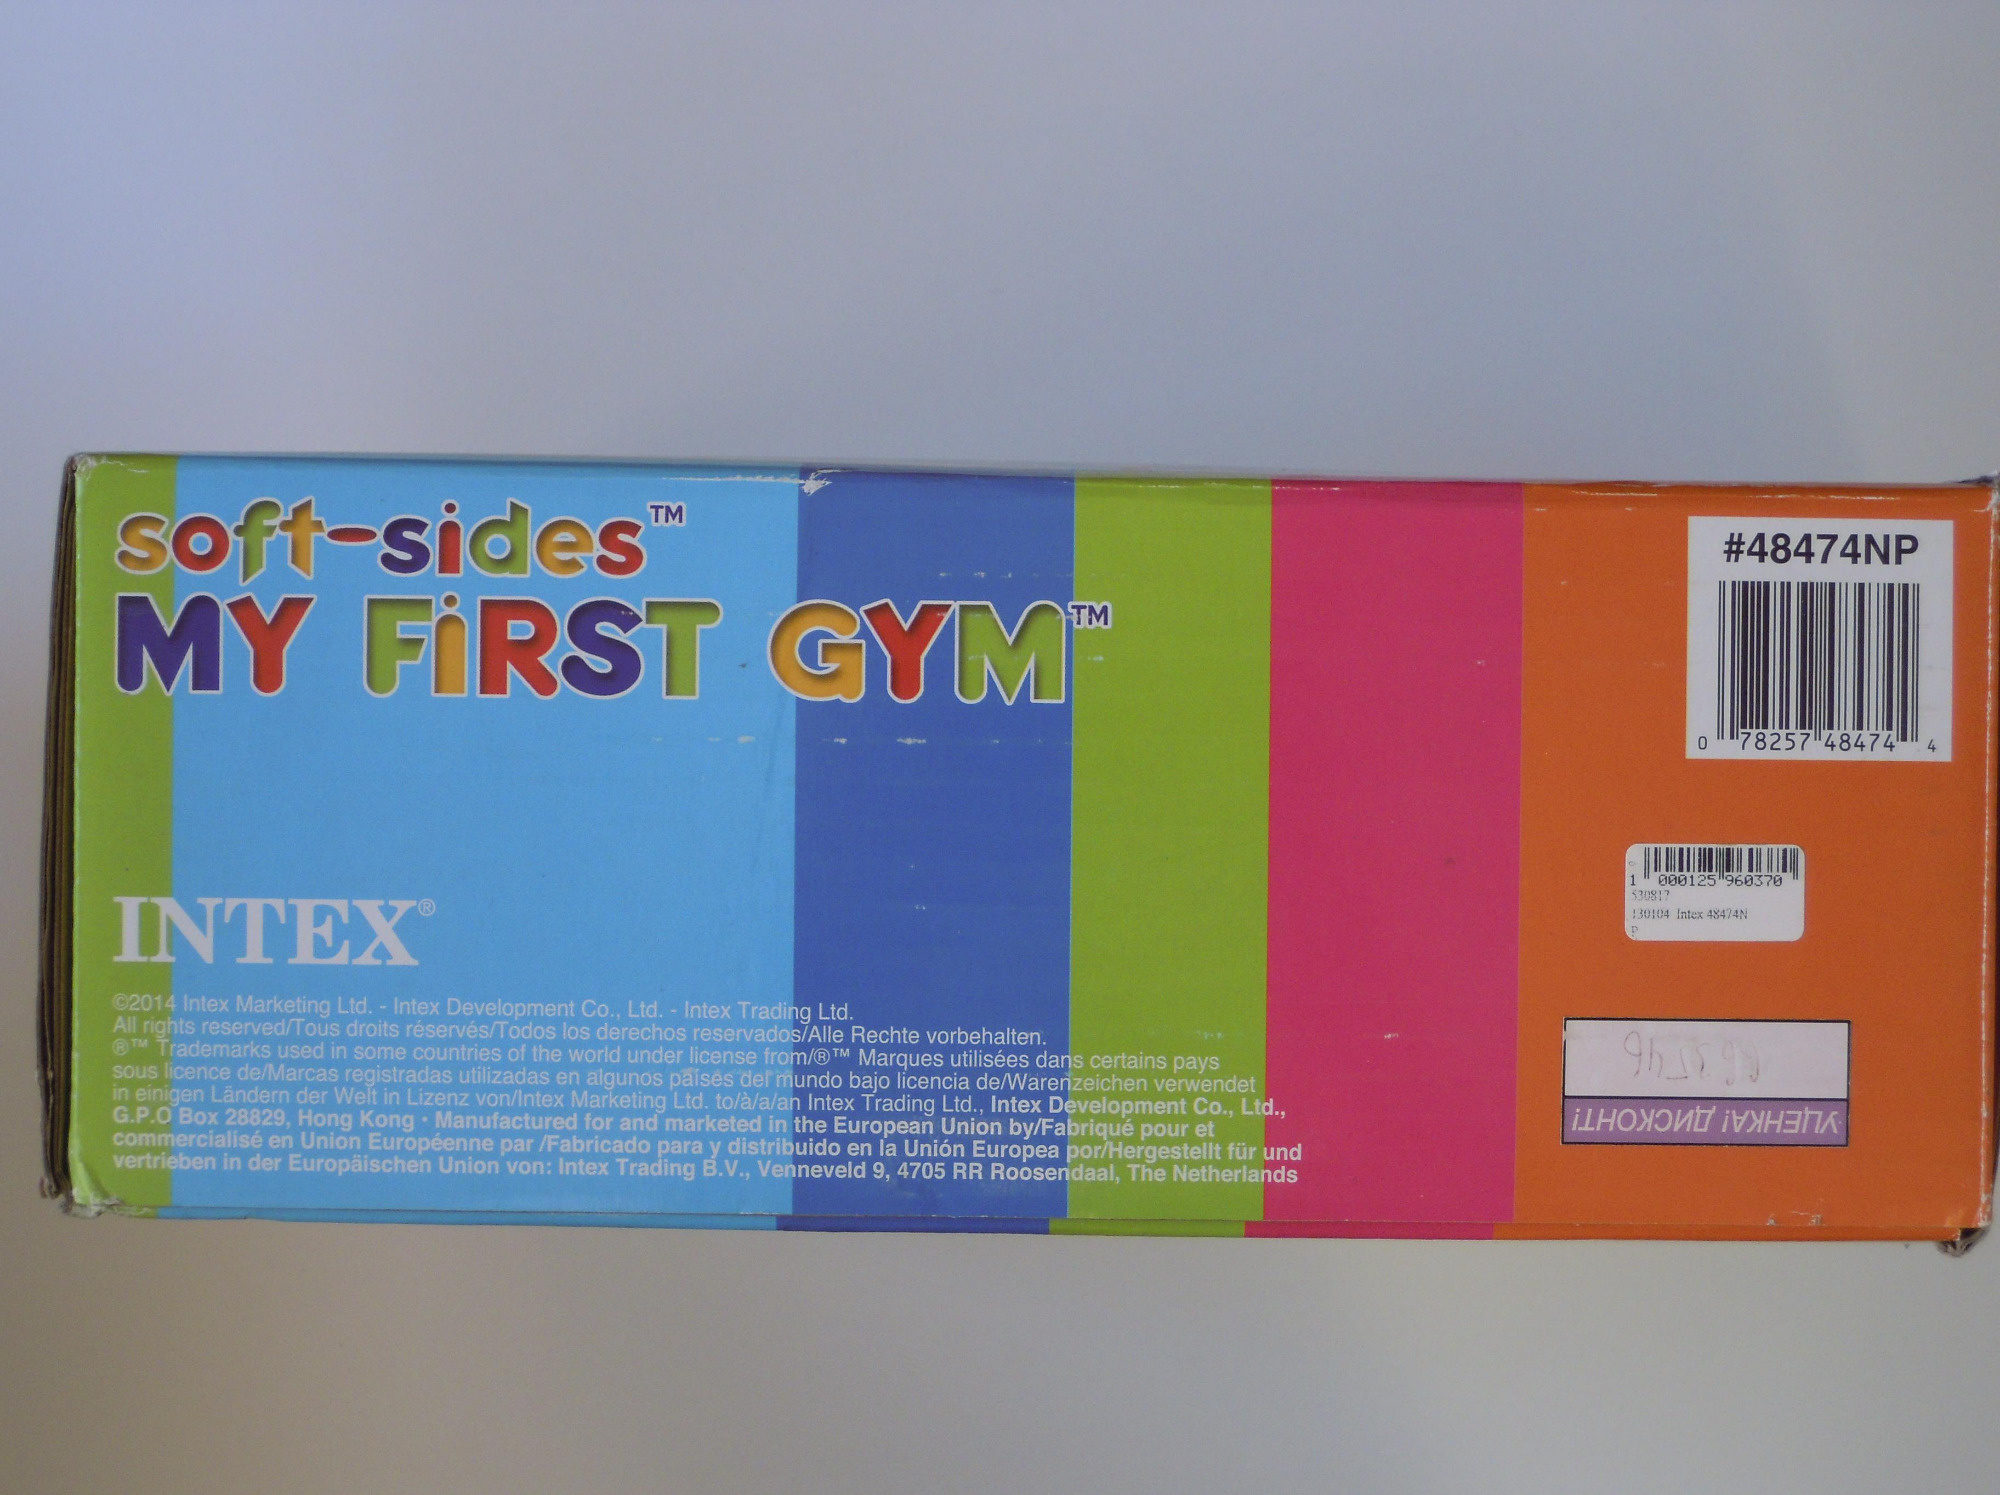 Soft-sides My First Gym - Product